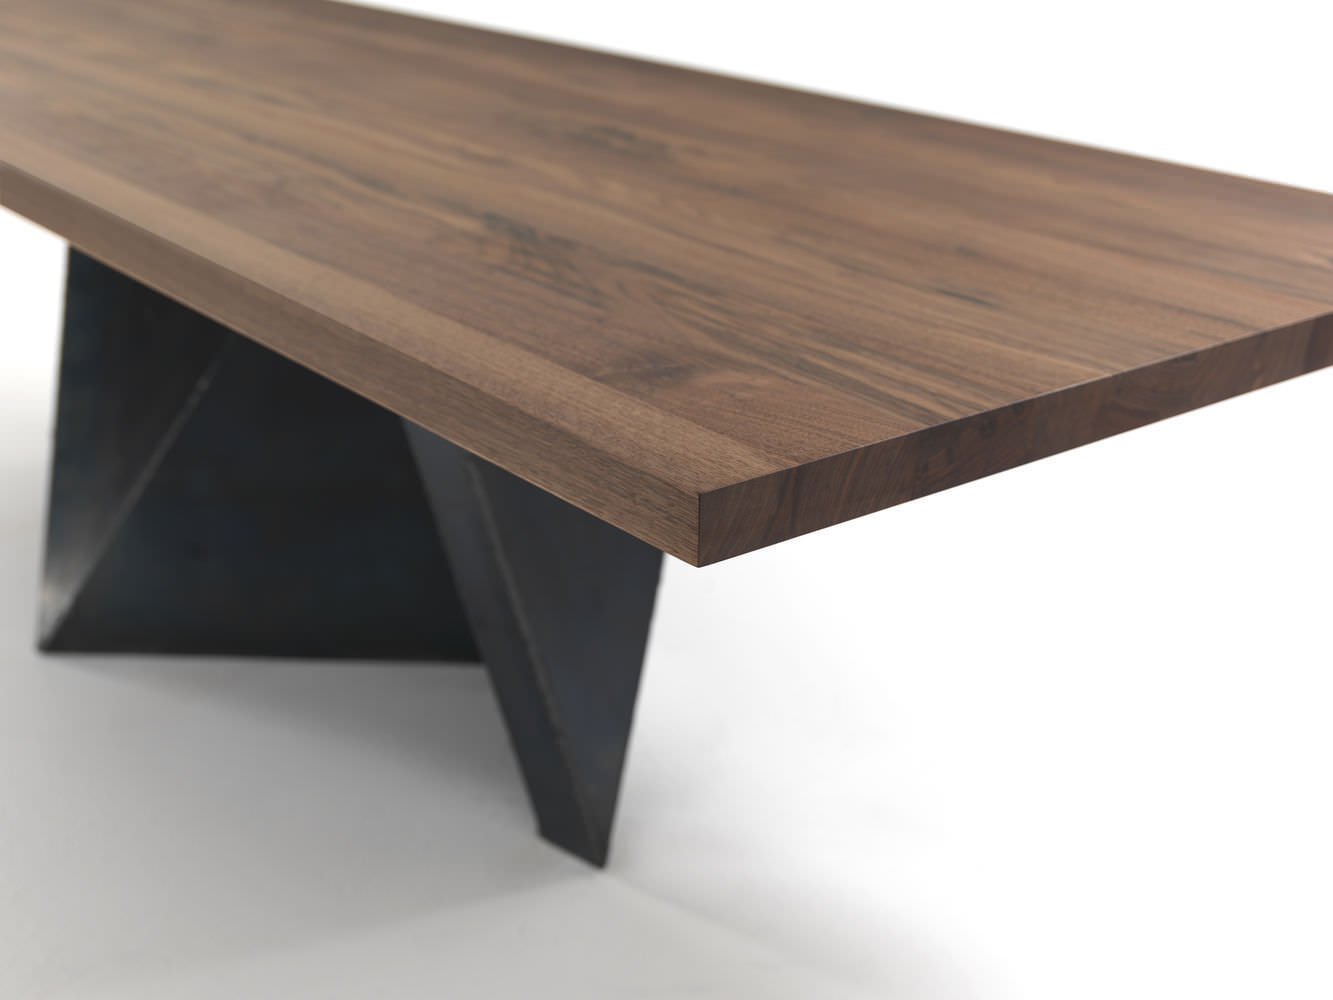 contemporary table / solid wood / wrought iron / rectangular ... - Mobili Moderni In Noce